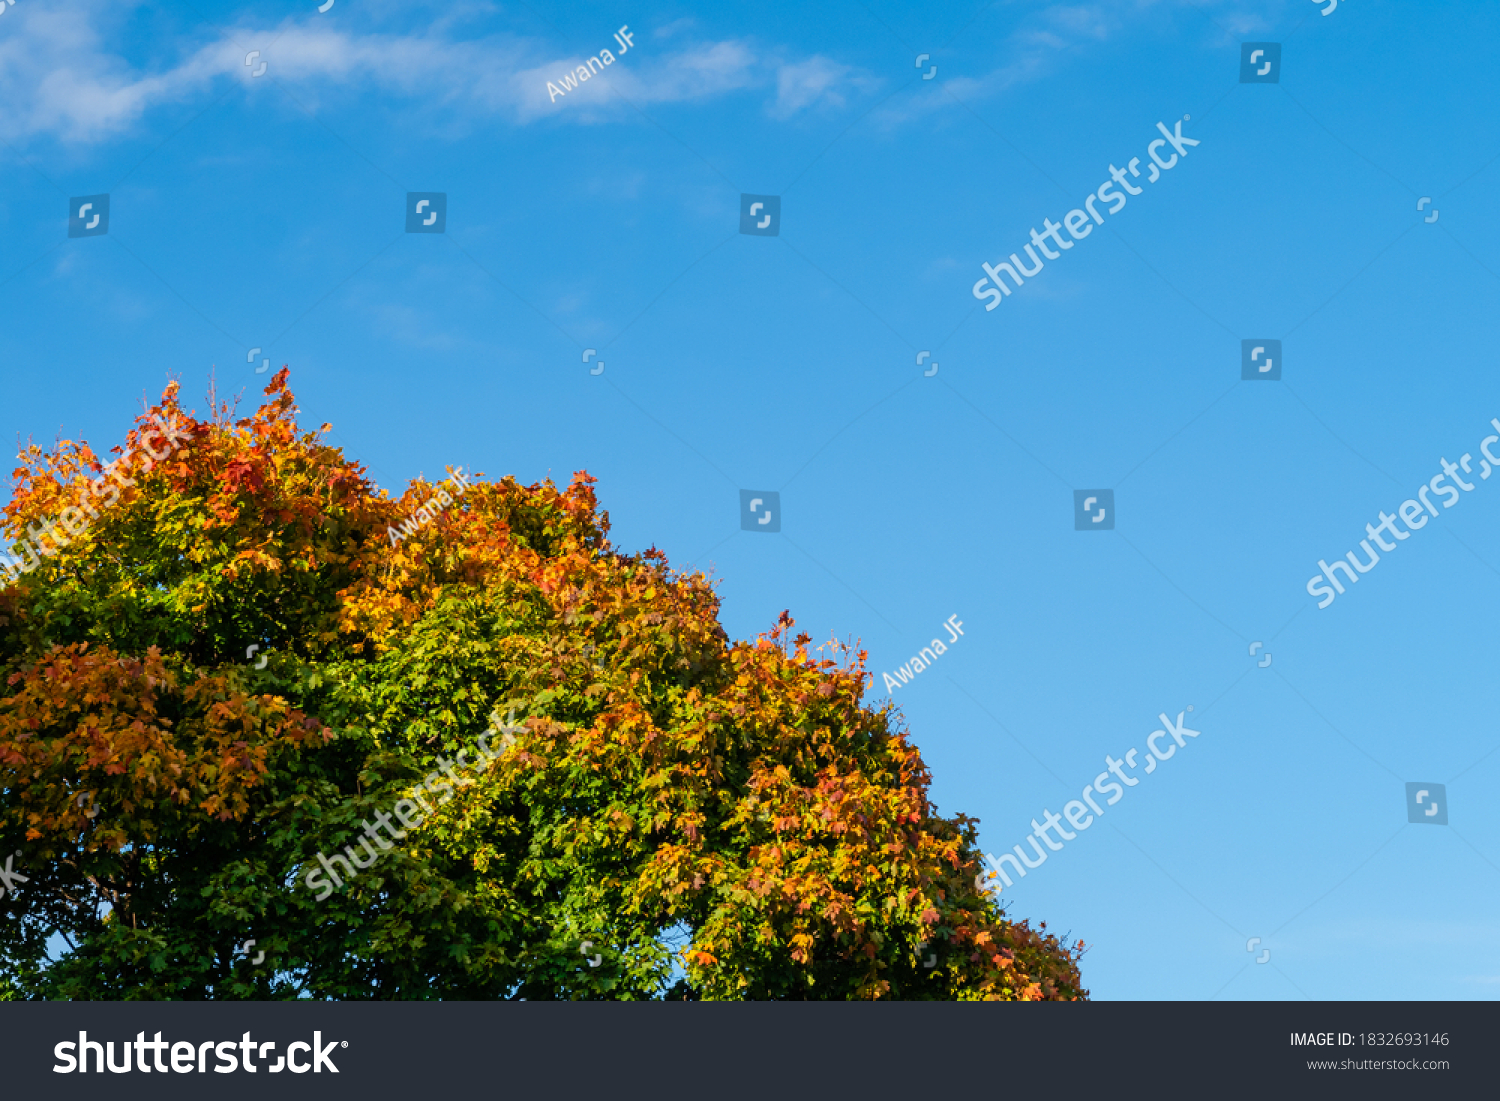 stock-photo-autumnal-view-of-a-tree-top-